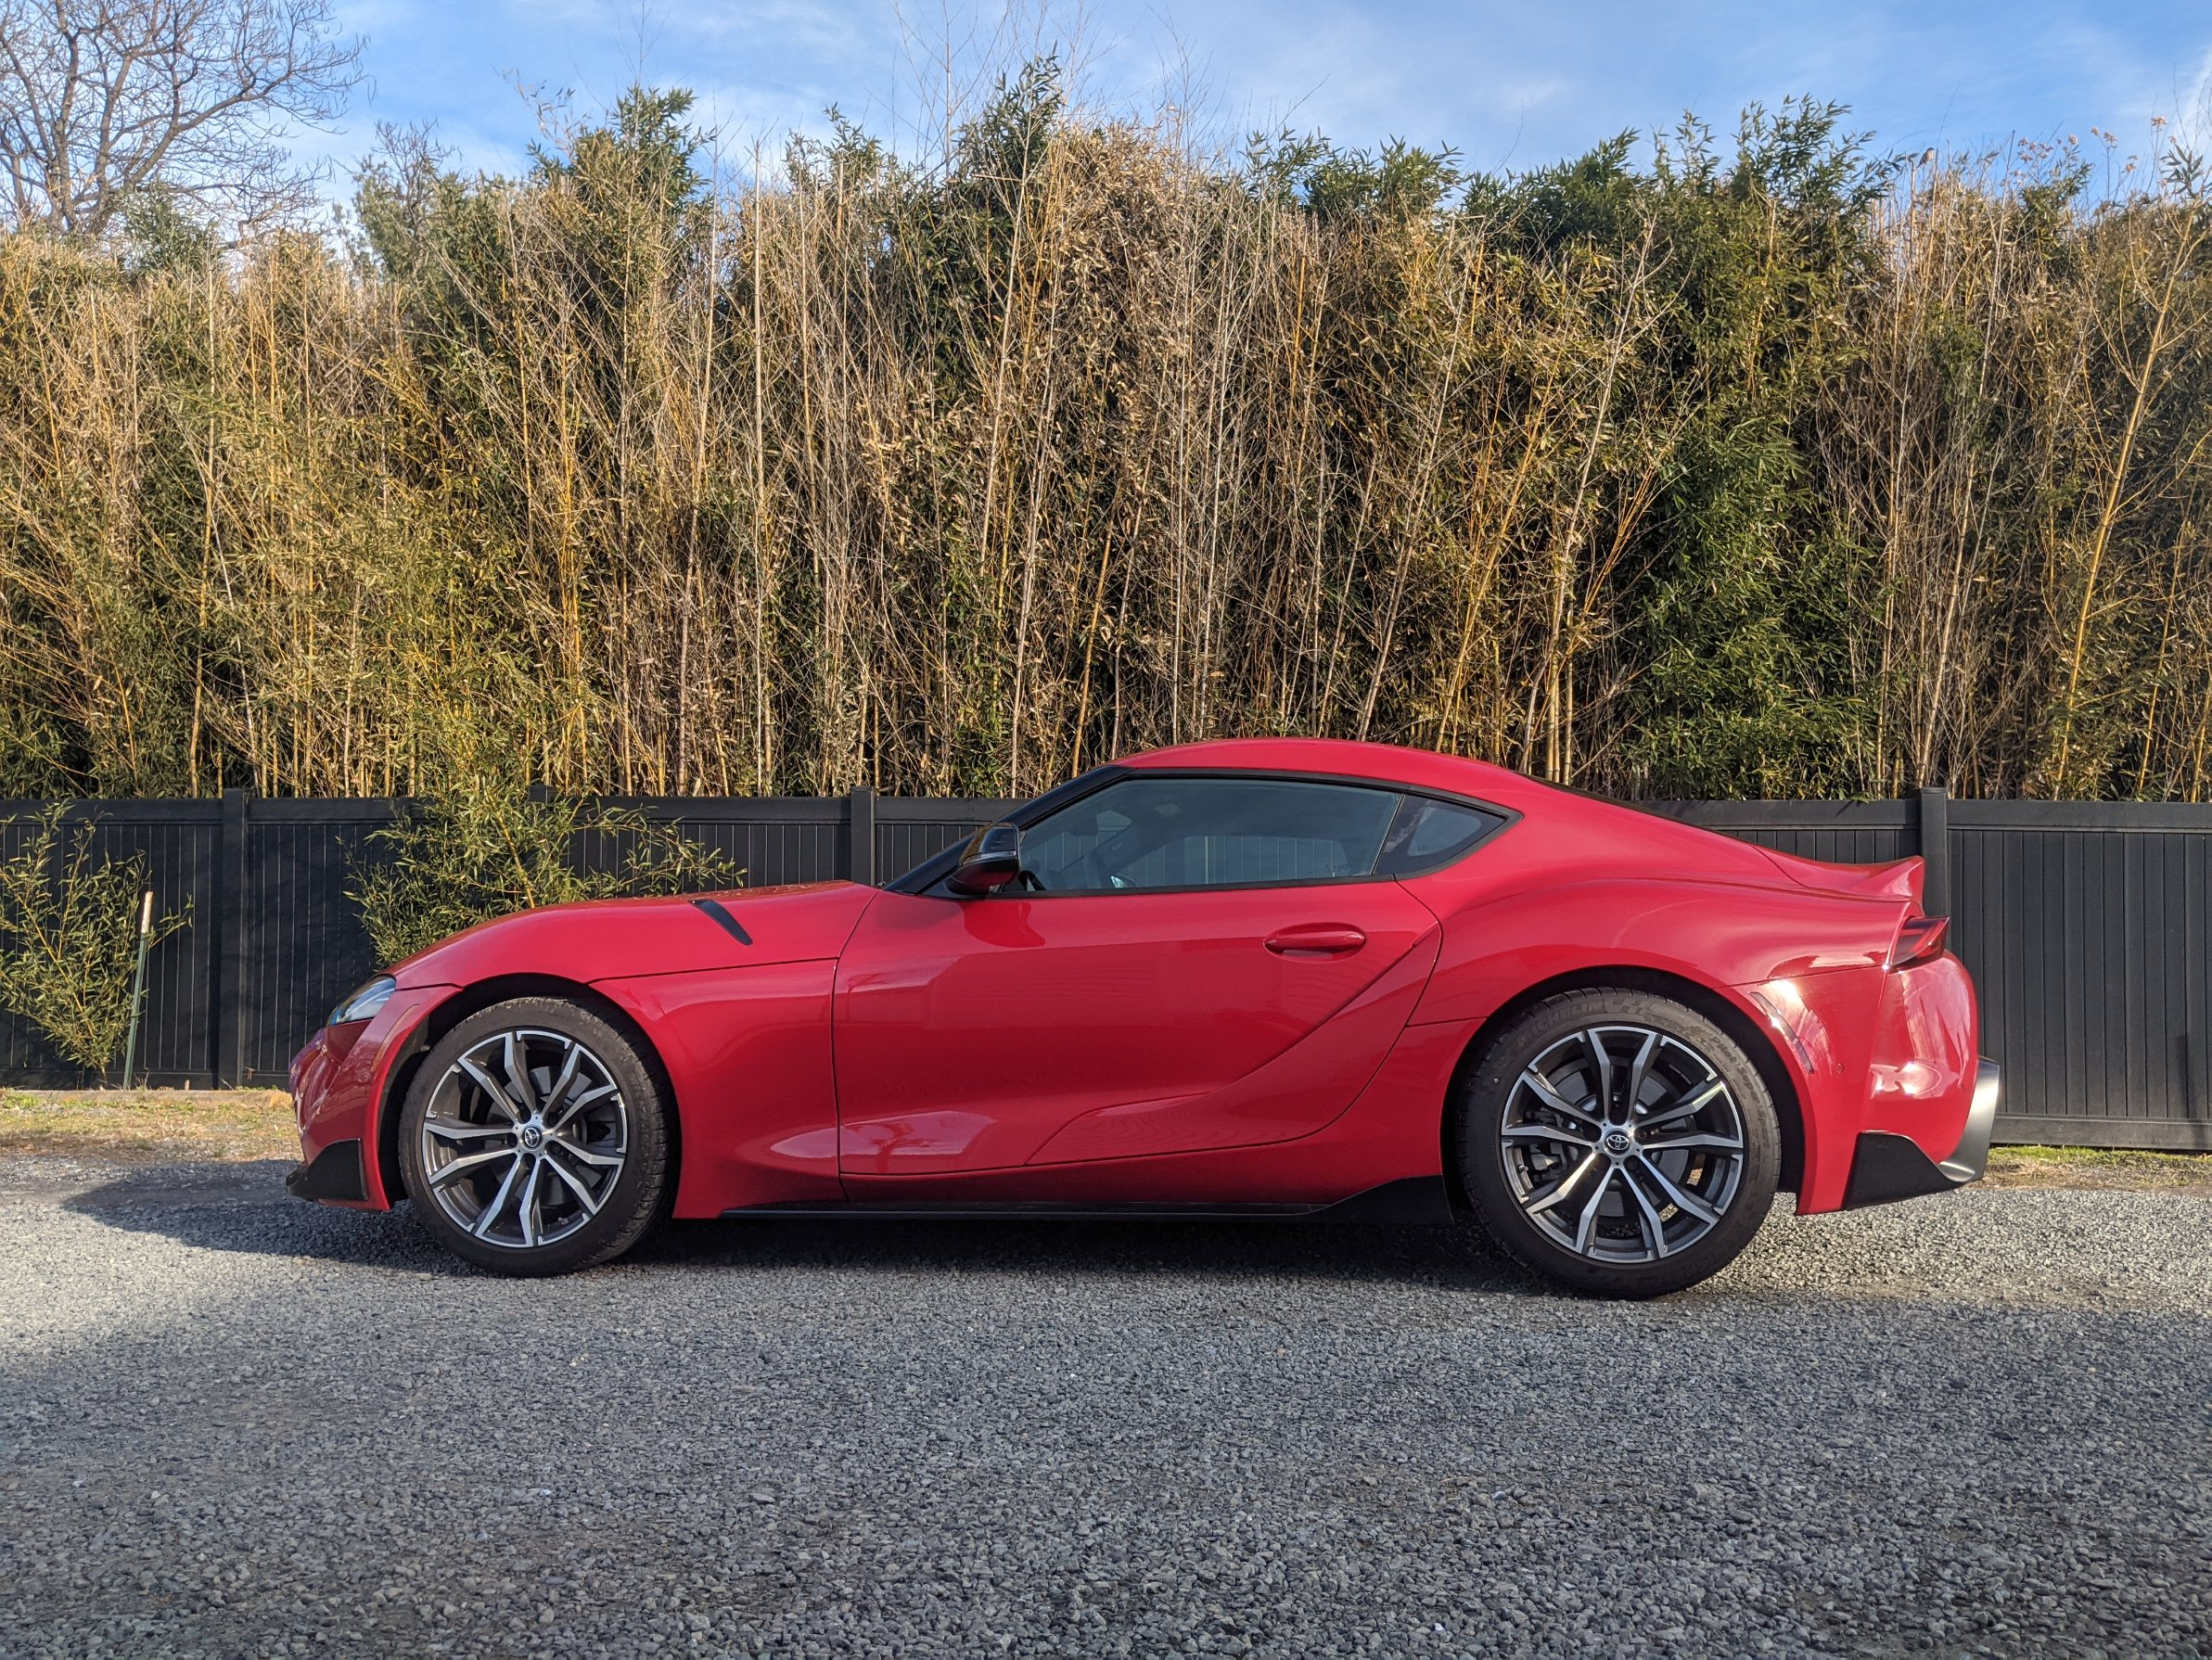 Red 2021 Toyota GR Supra 2.0 in front of bamboo